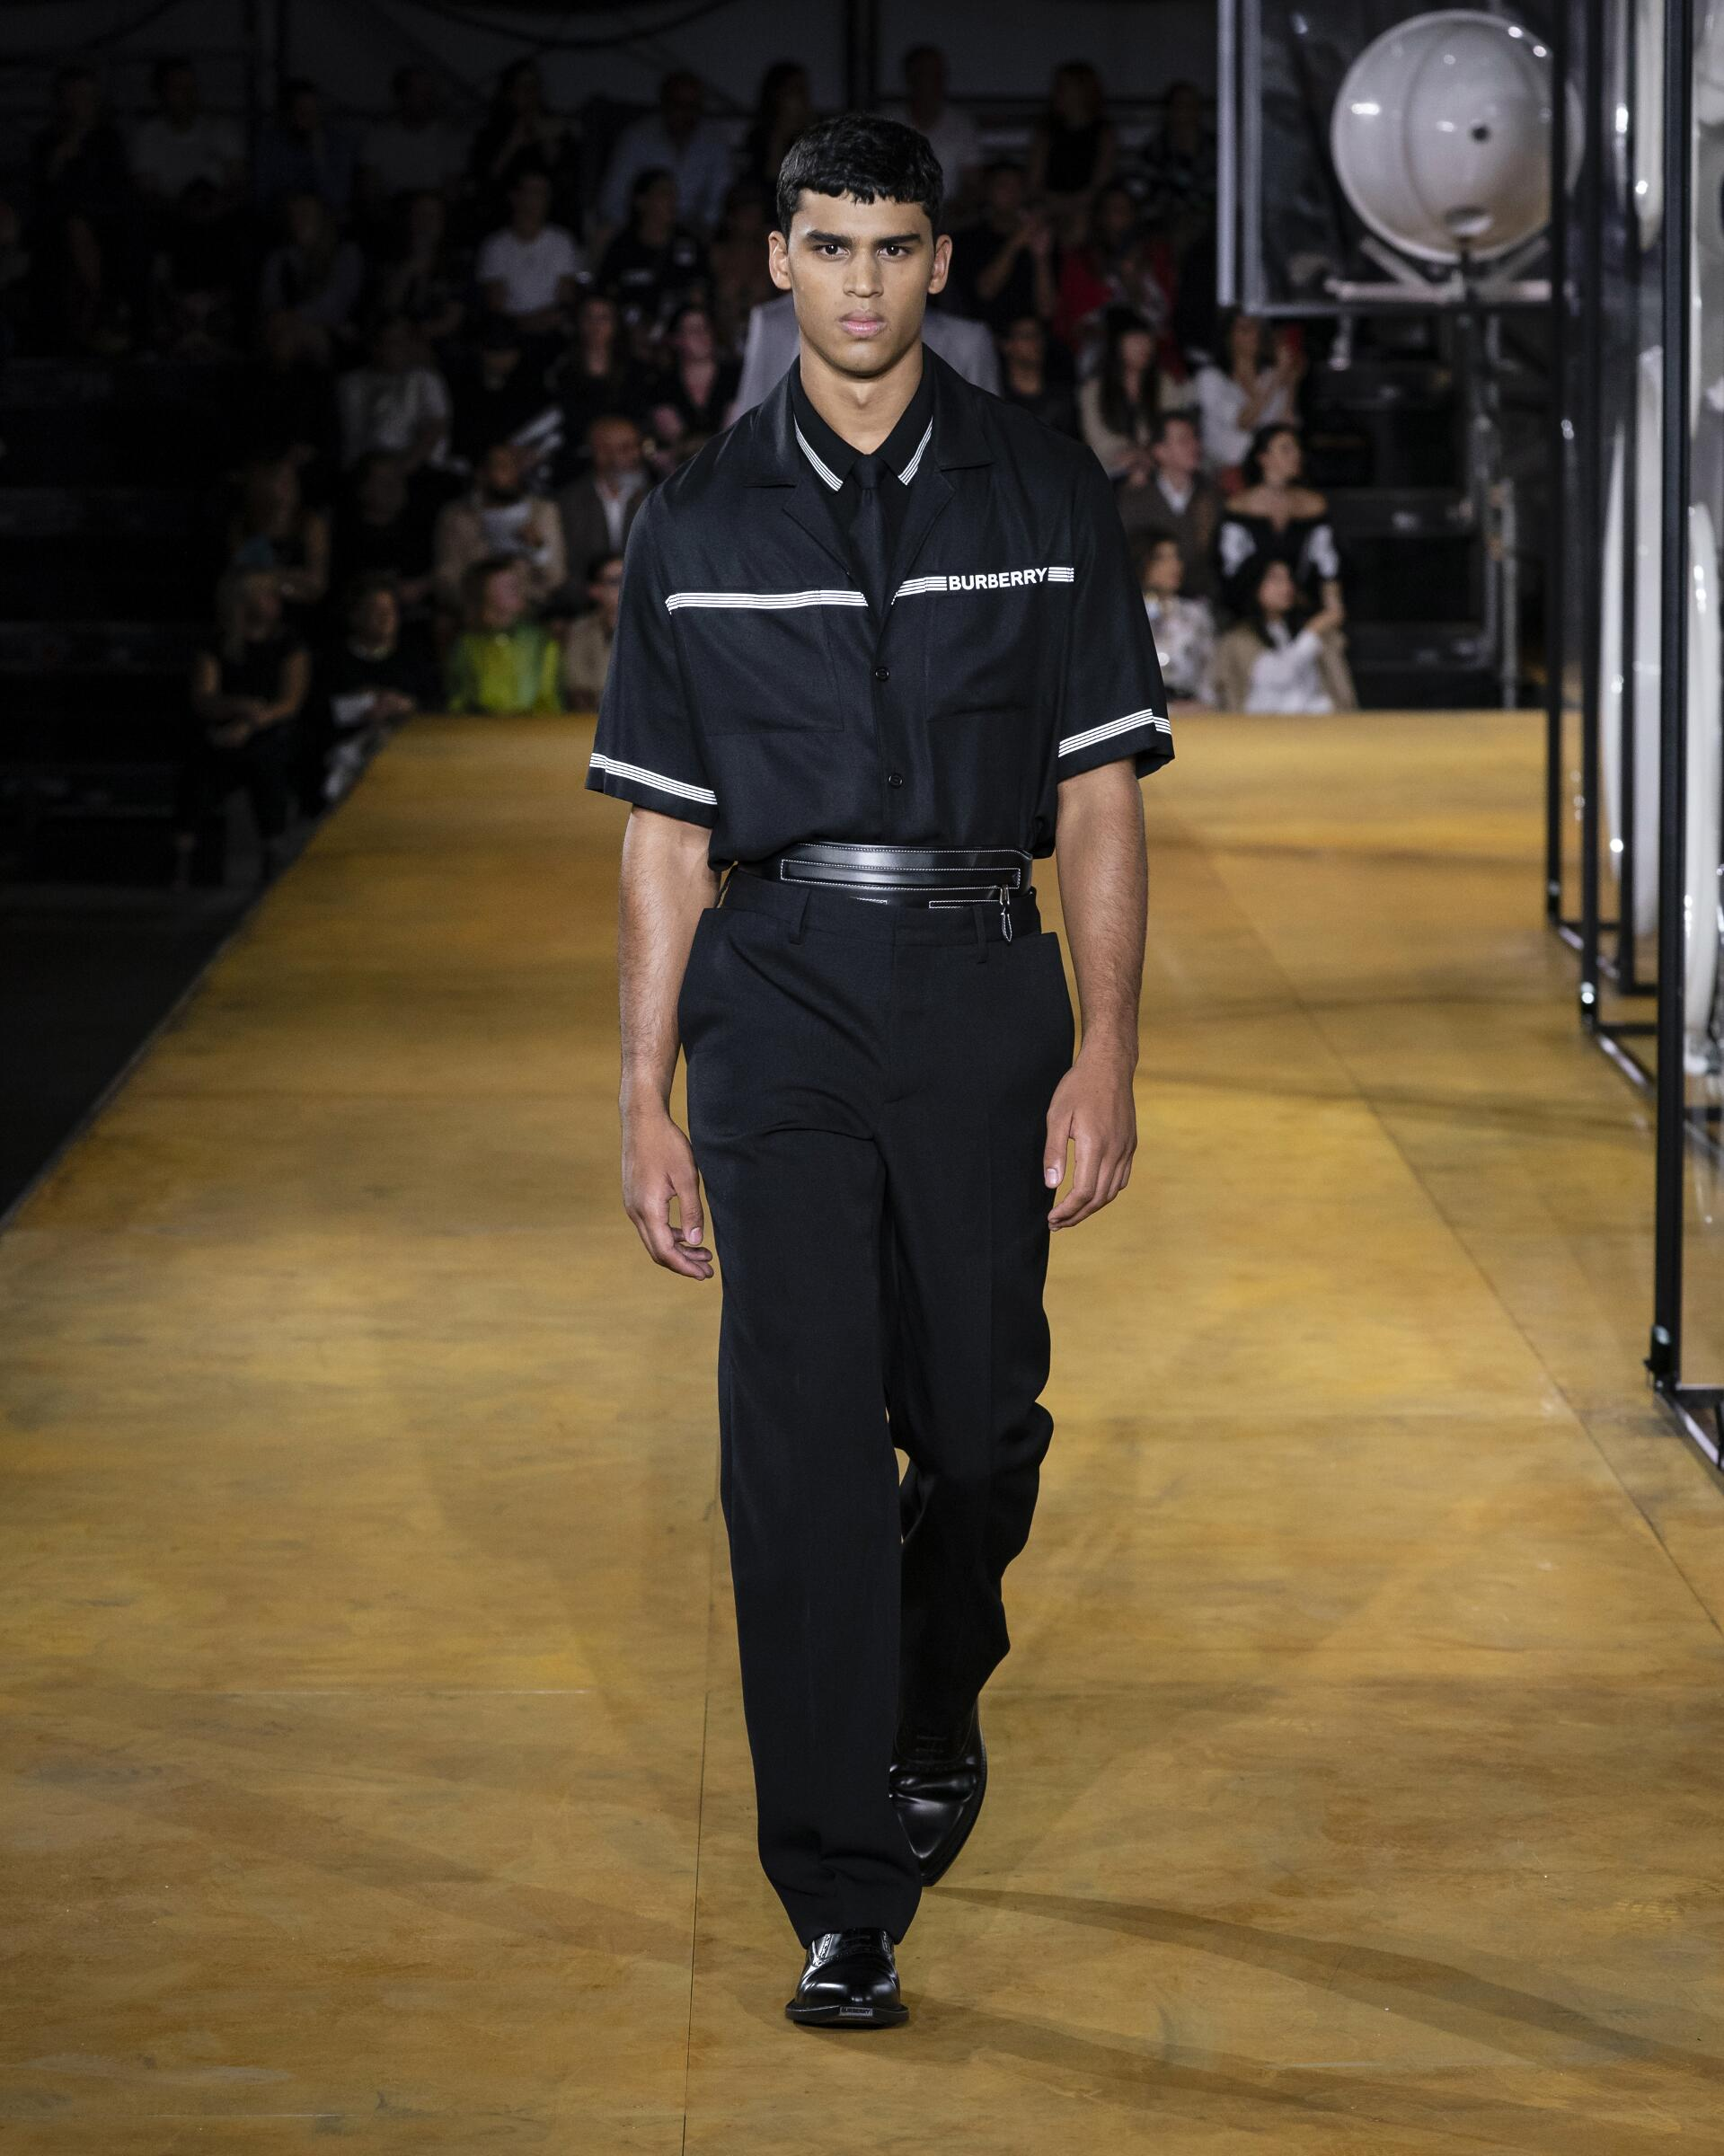 2020 Burberry Menswear Spring Catwalk